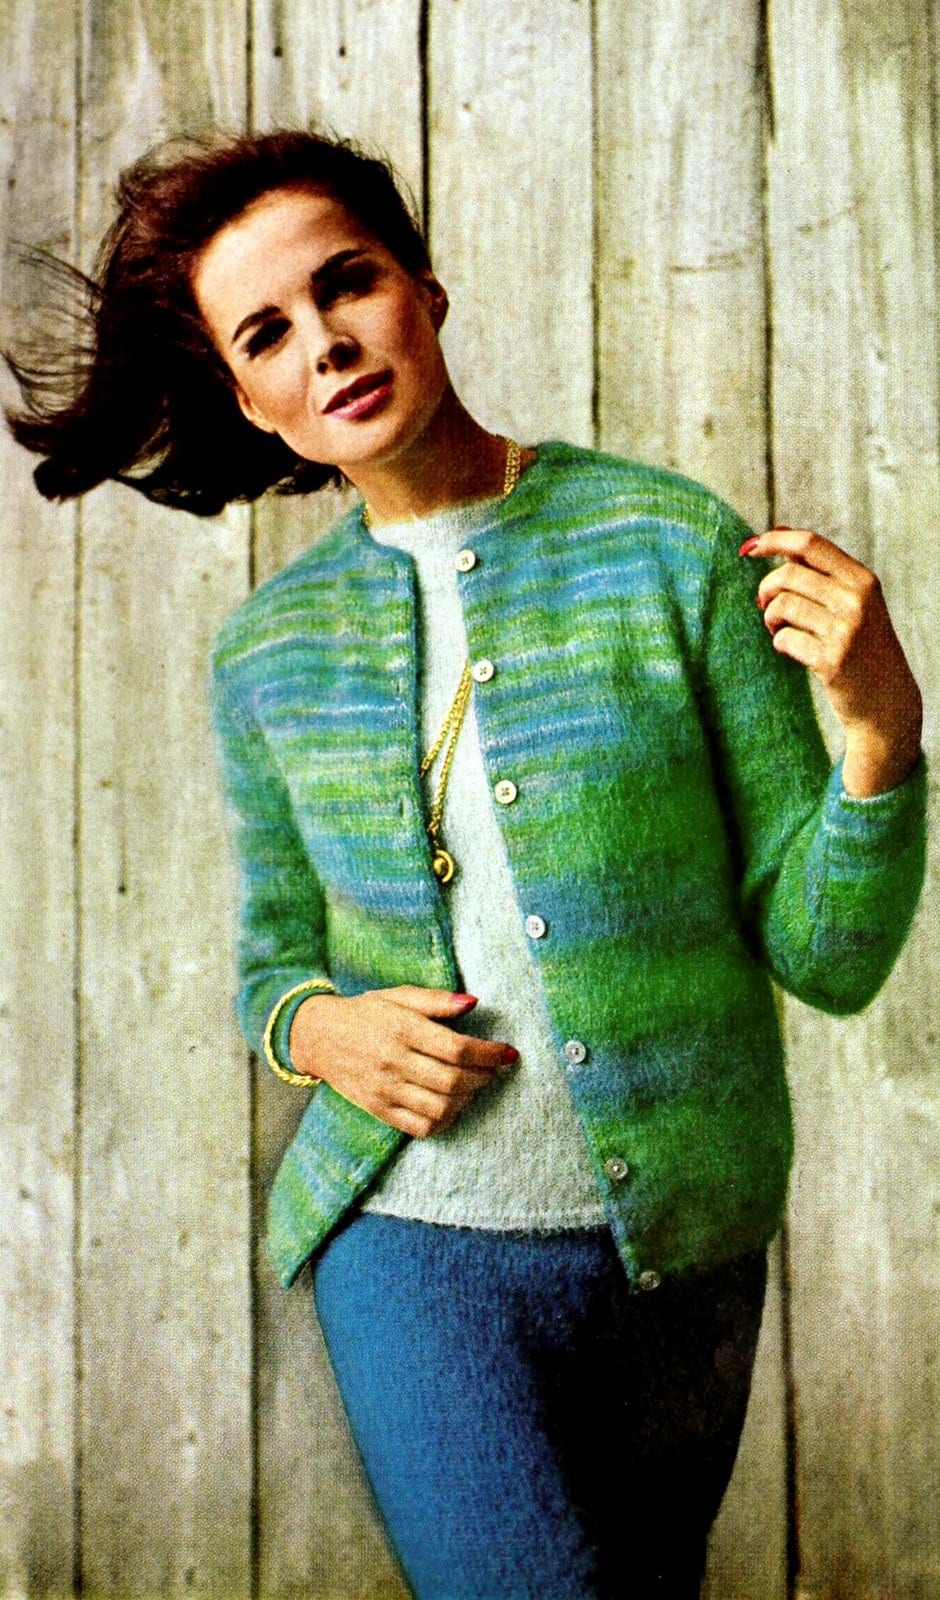 Vintage green and blue wool sweater from 1964